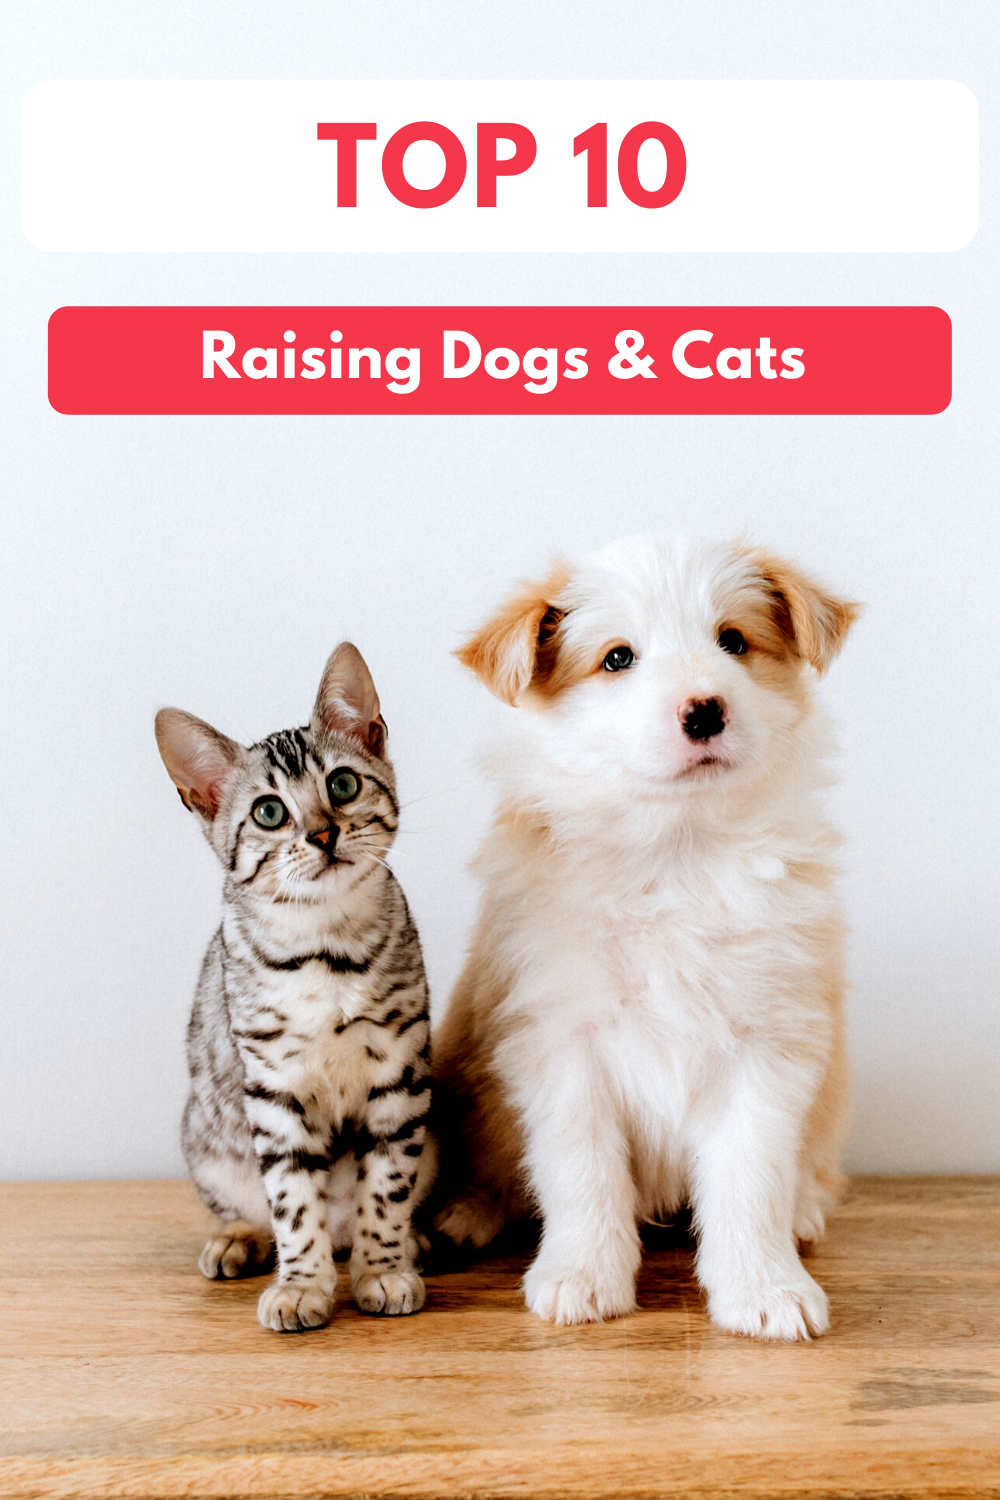 Top 10 Tips for Raising Dogs and Cats Together   Dogs and Cats Living Together in Harmony (Early access for our Patreon community)